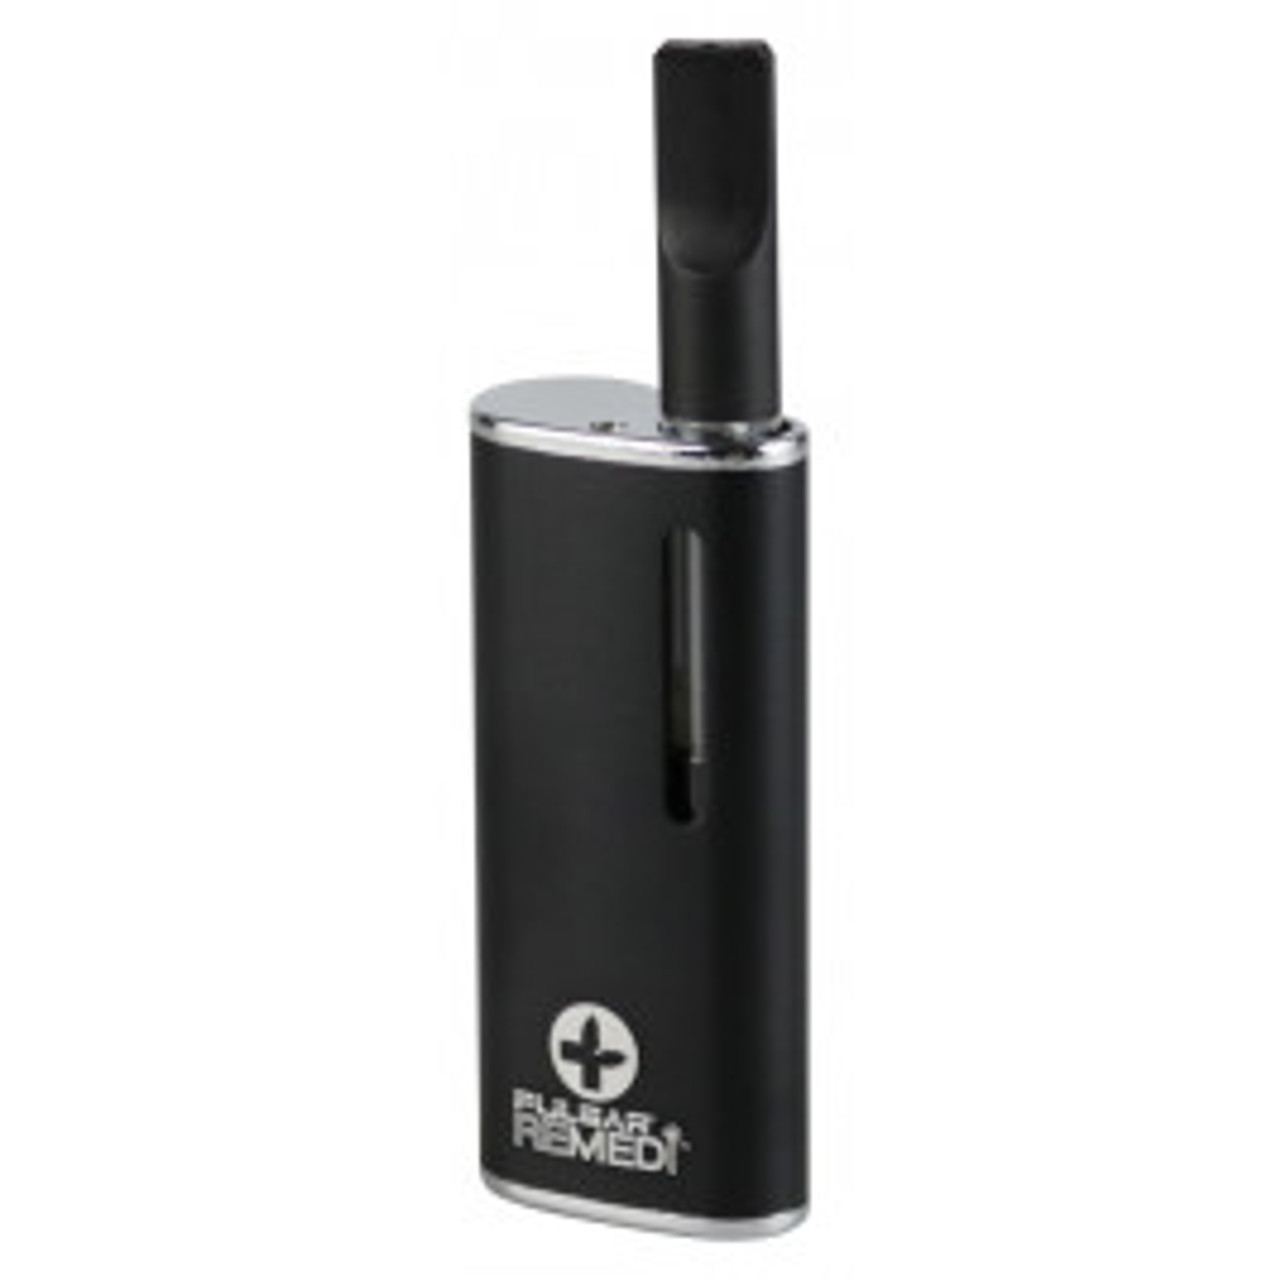 Pulsar ReMEDi Micro Thick Oil Vape